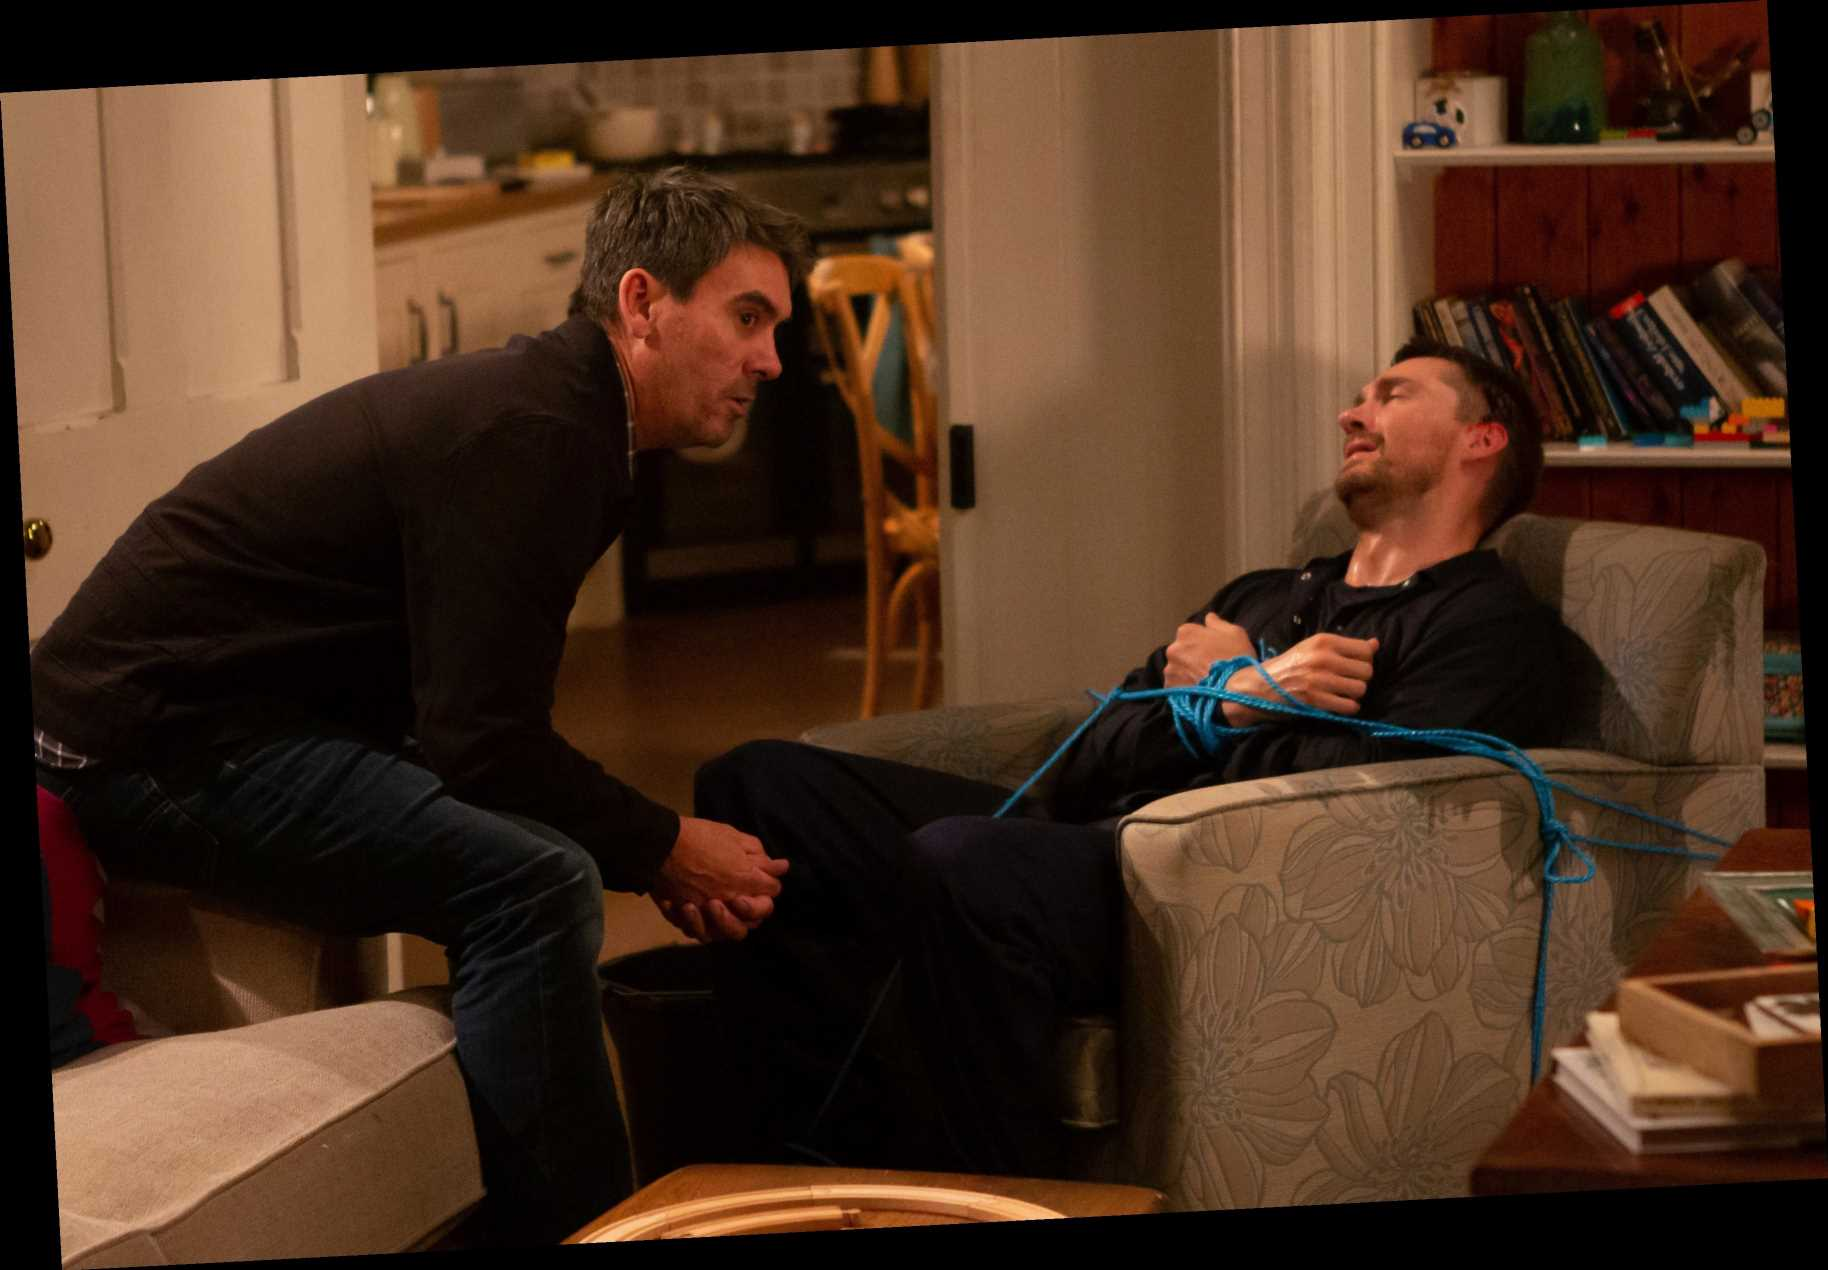 Emmerdale spoilers: Cain tortures Pete into revealing Moira and Nate's affair